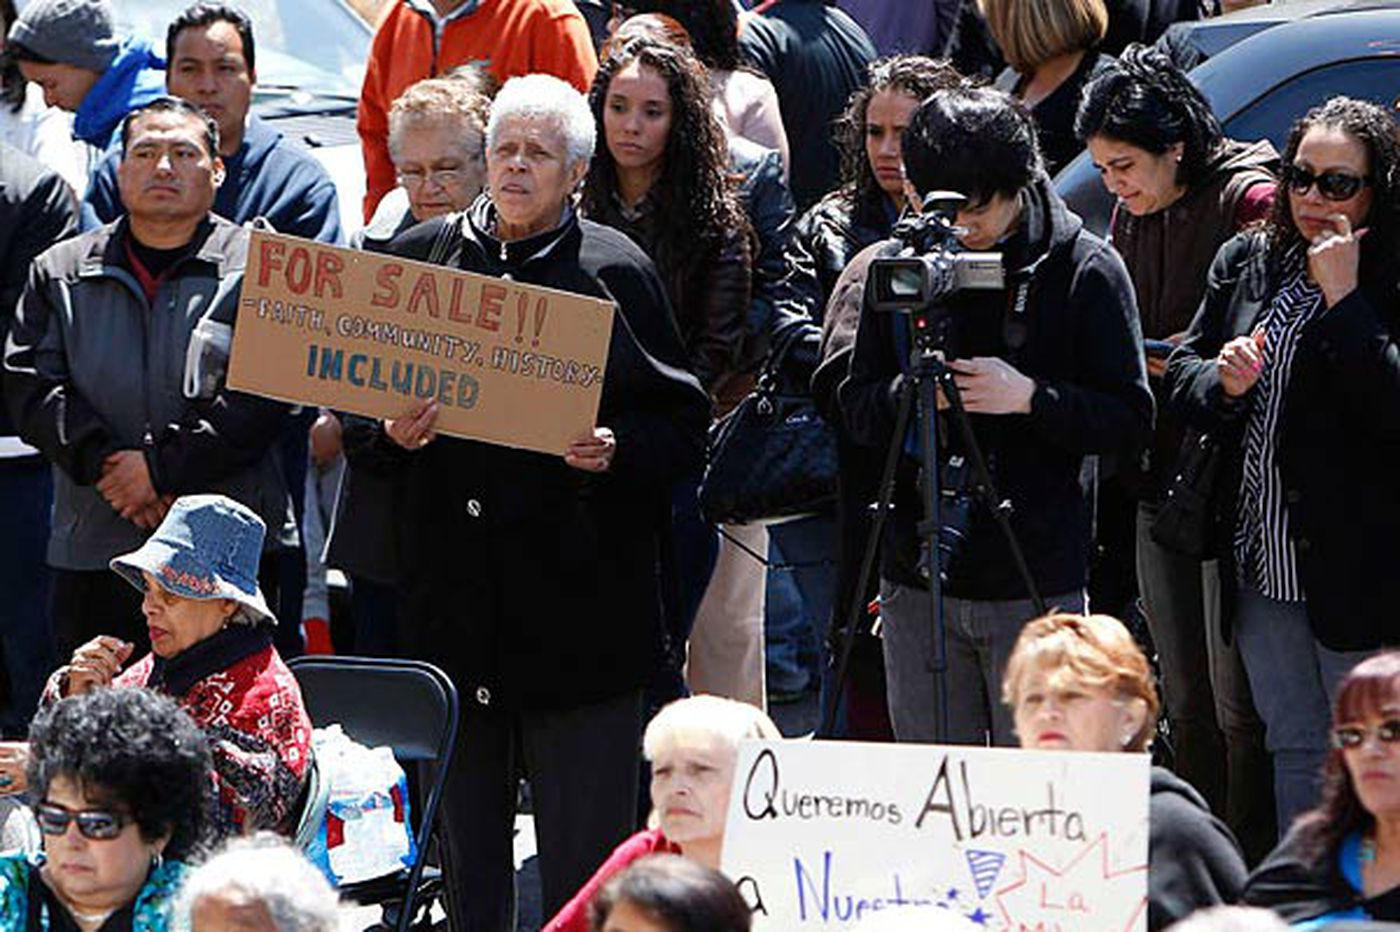 Group rallies to protest closure of Spanish chapel